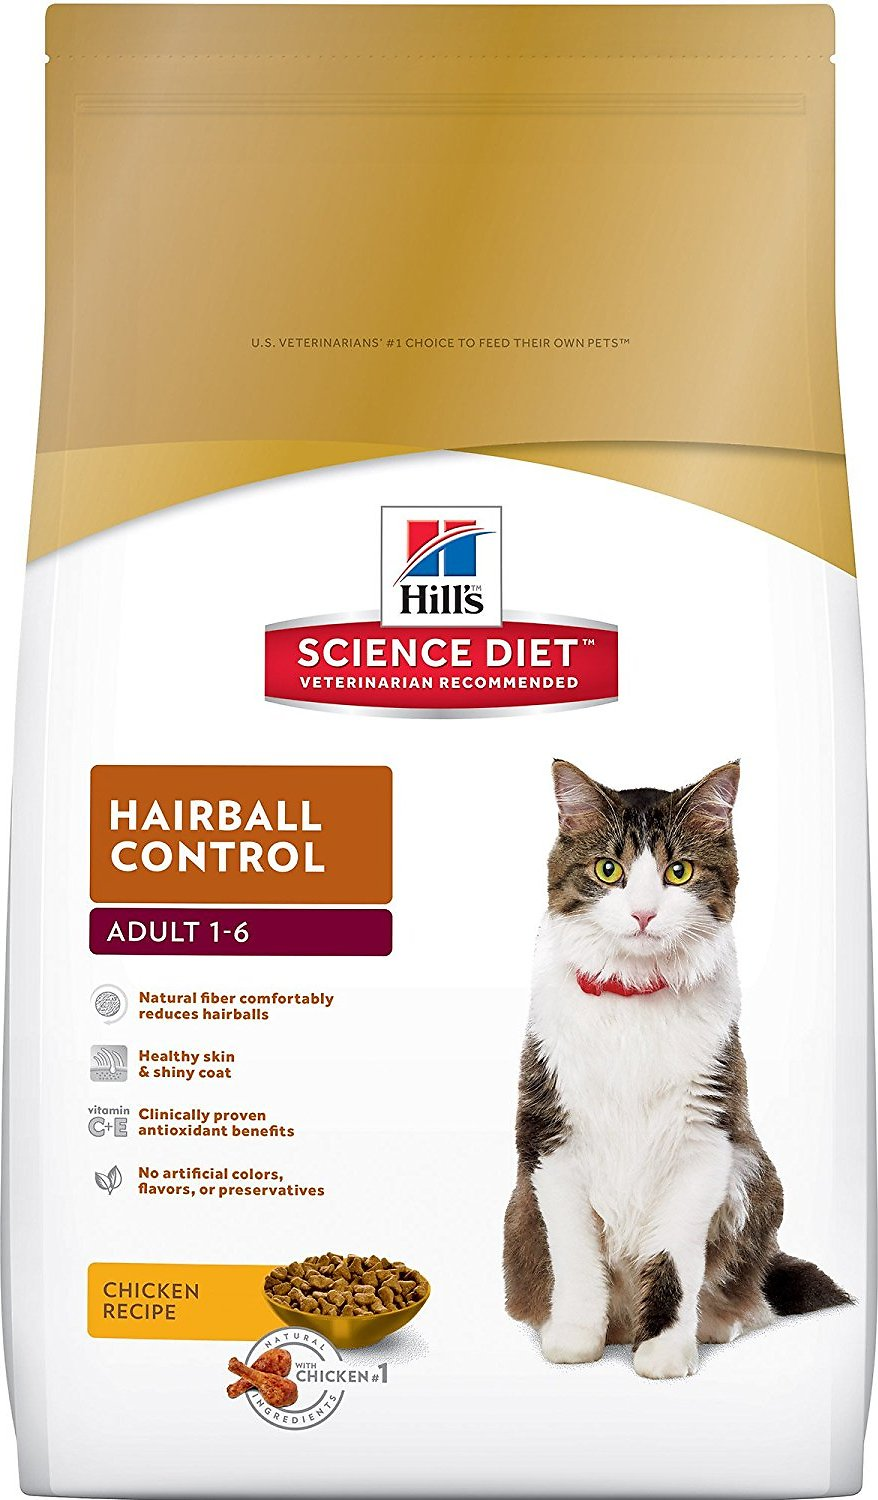 Hill's Science Diet Adult Hairball Control Dry Cat Food Image